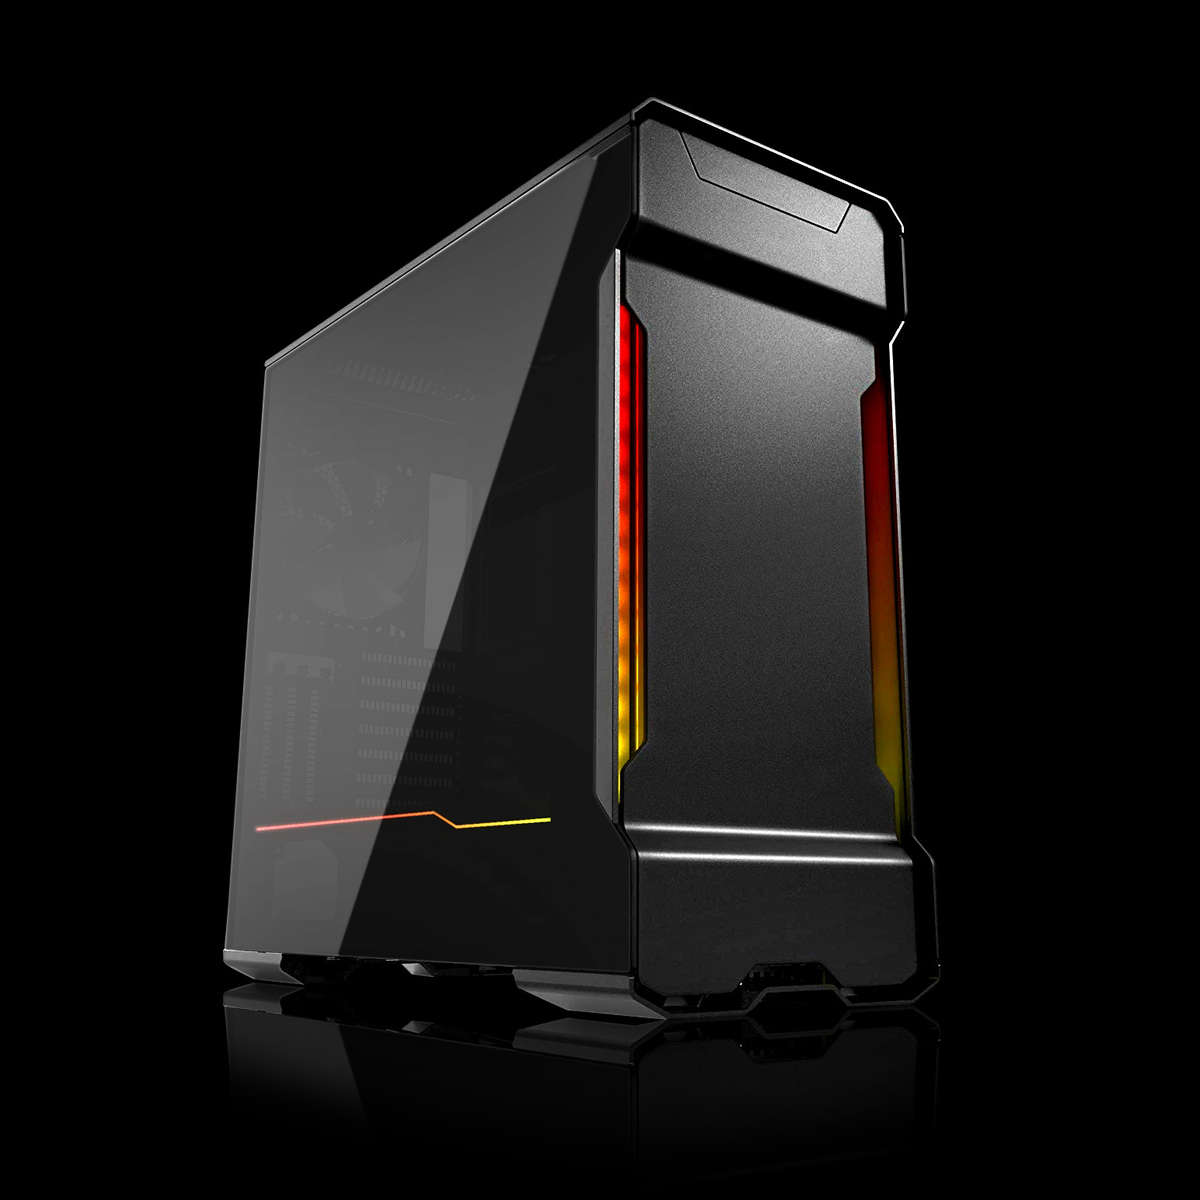 PRE-ORDER - Chillblast Fusion Palladian Core i9 Architectural Workstation